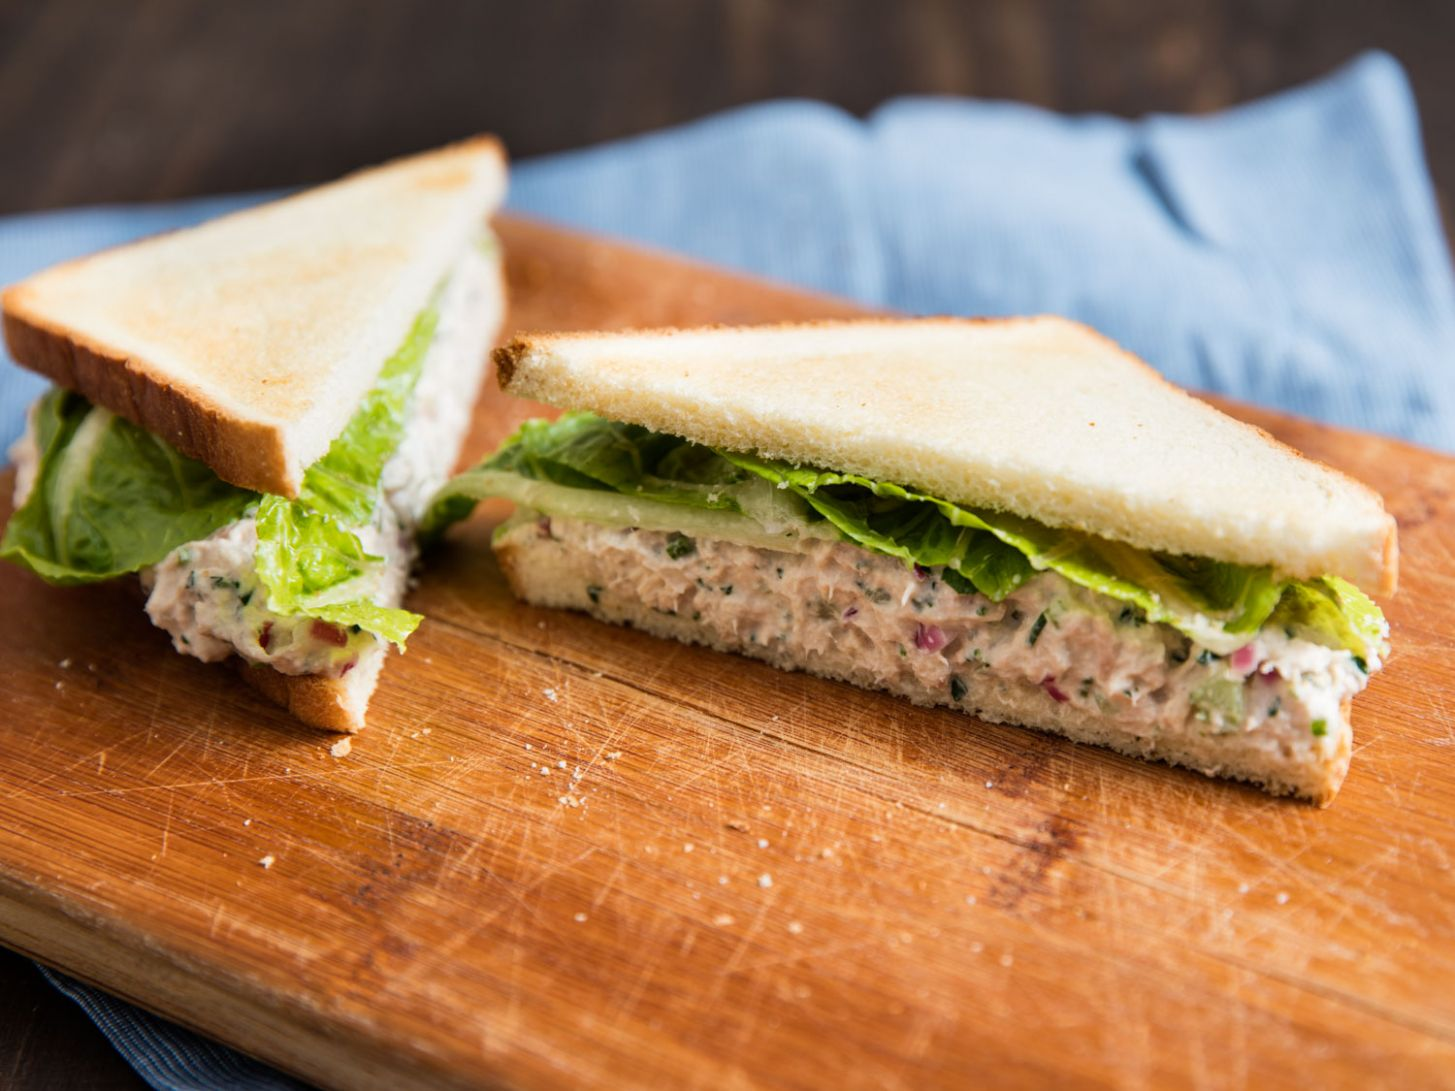 For Better Tuna Salad Sandwiches, With Mayo or Without, Add More ..